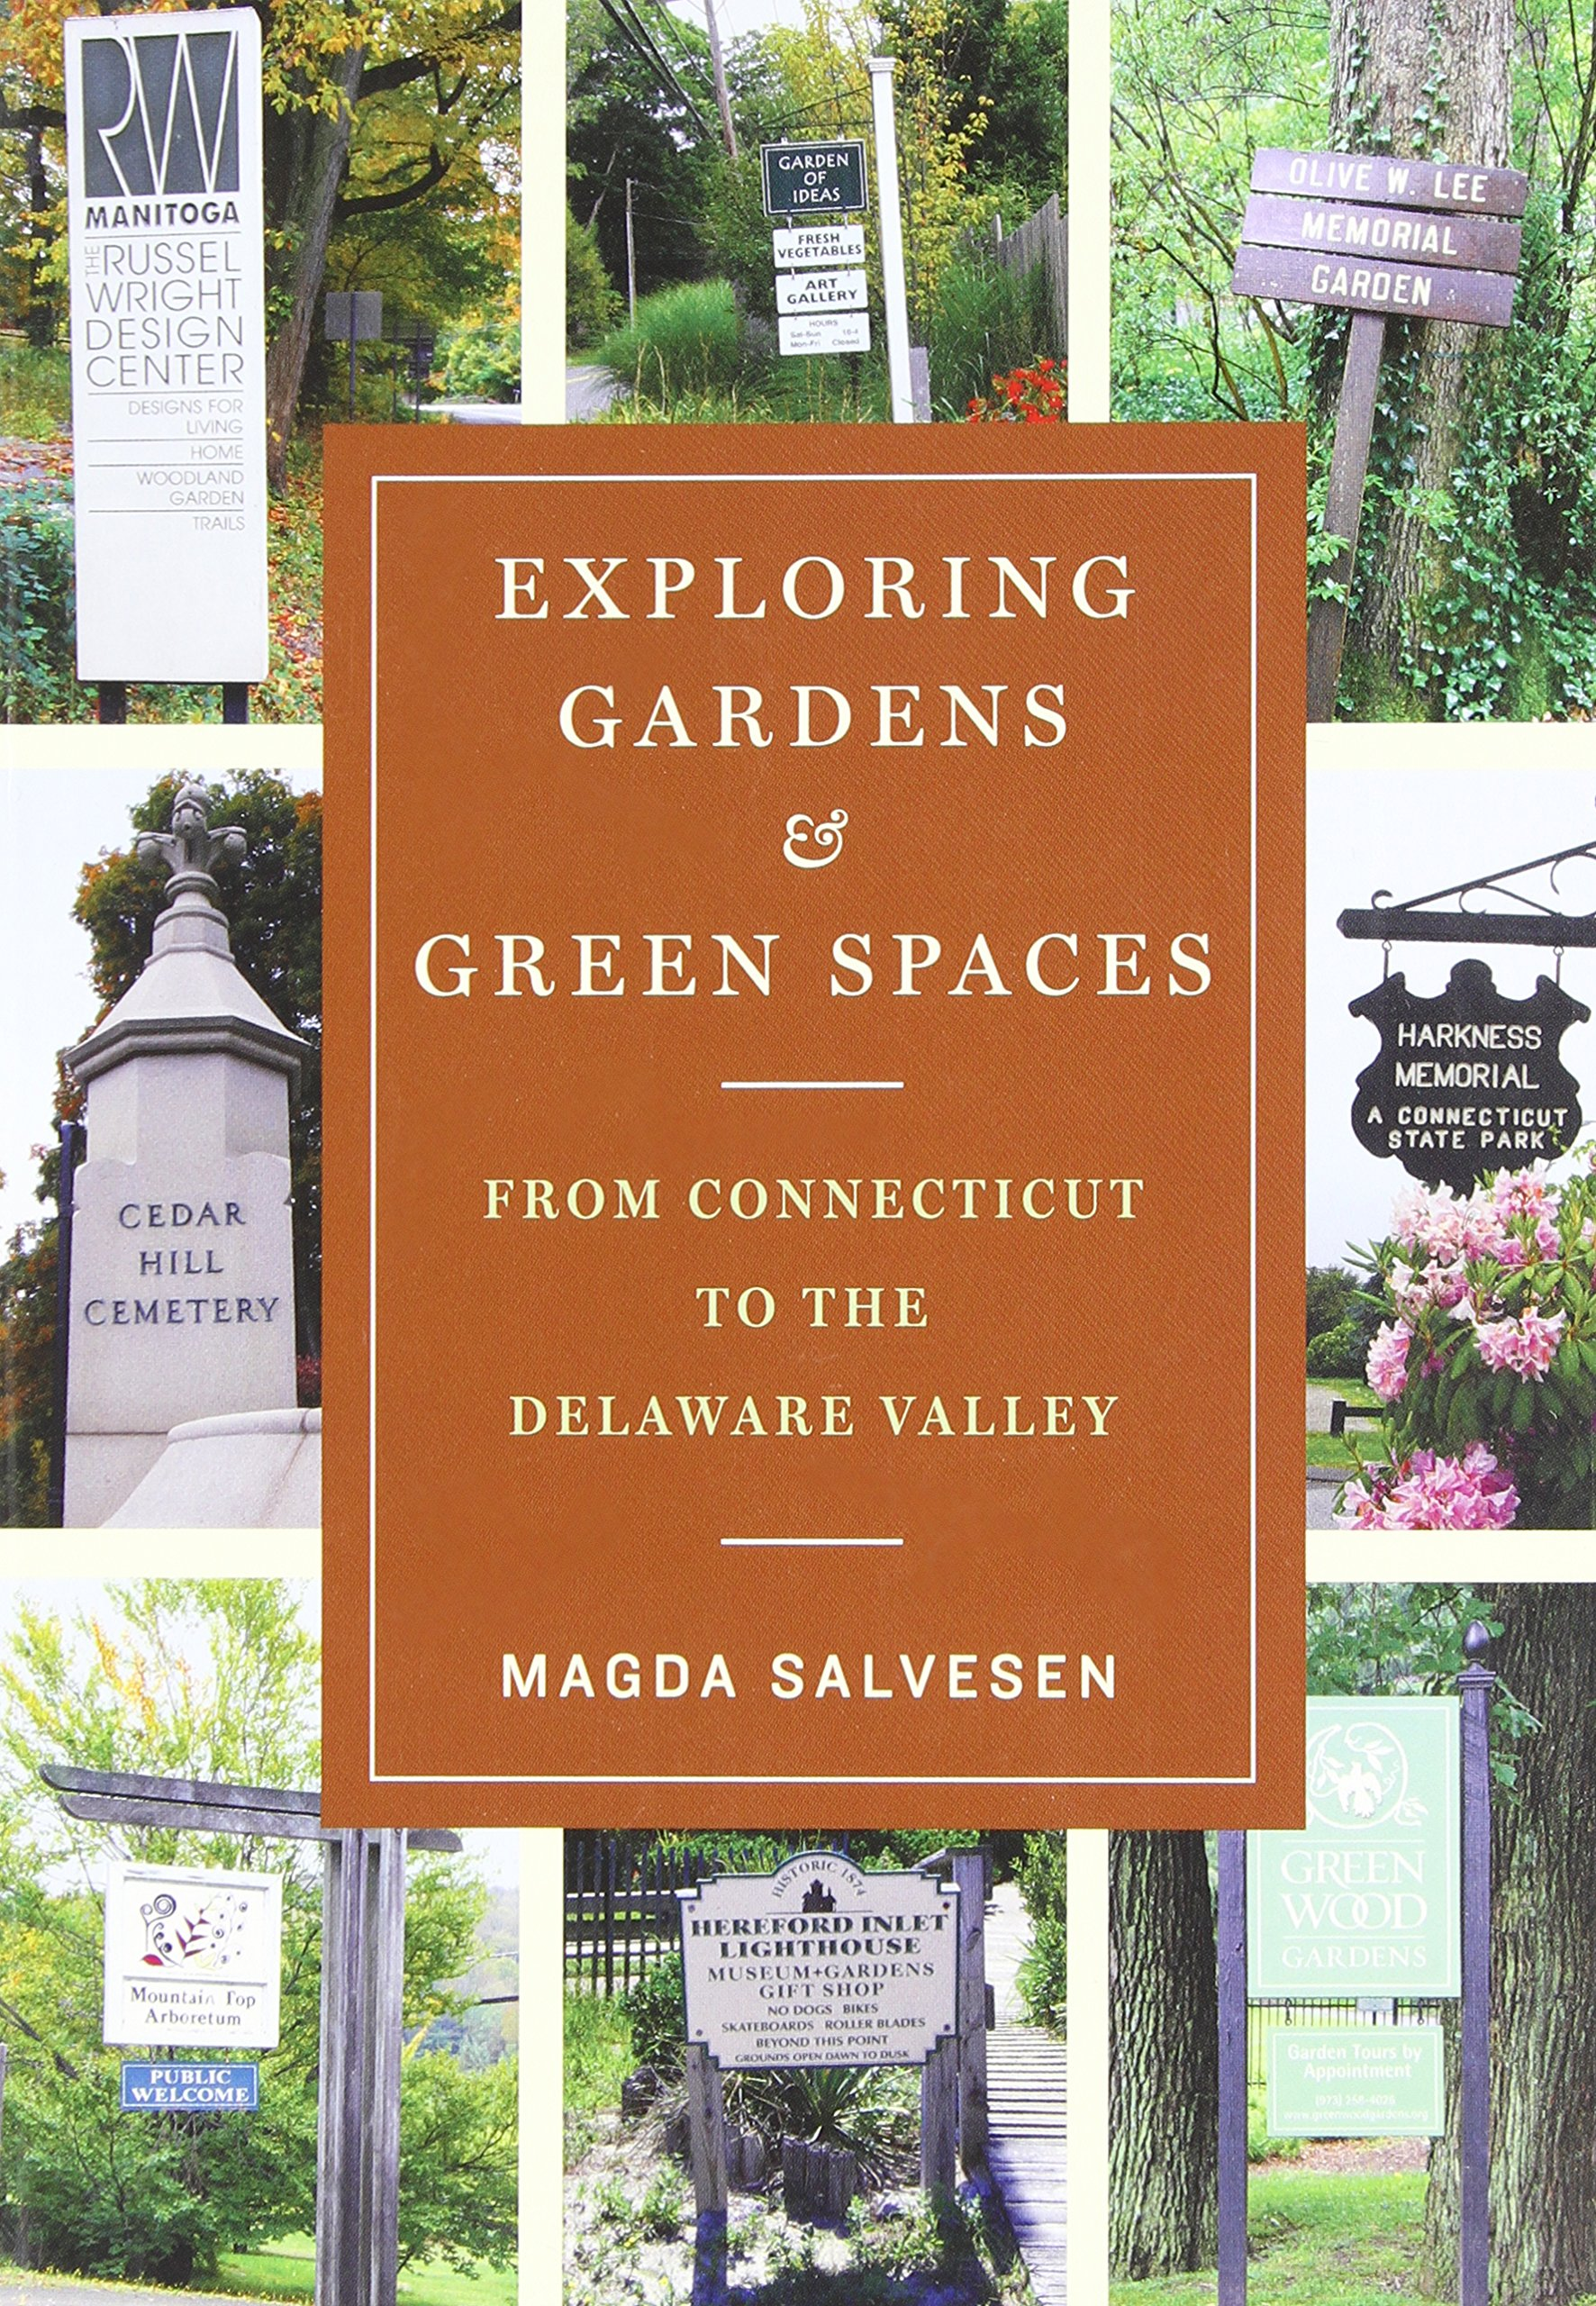 Exploring Gardens & Green Spaces: From Connecticut to the Delaware Valley